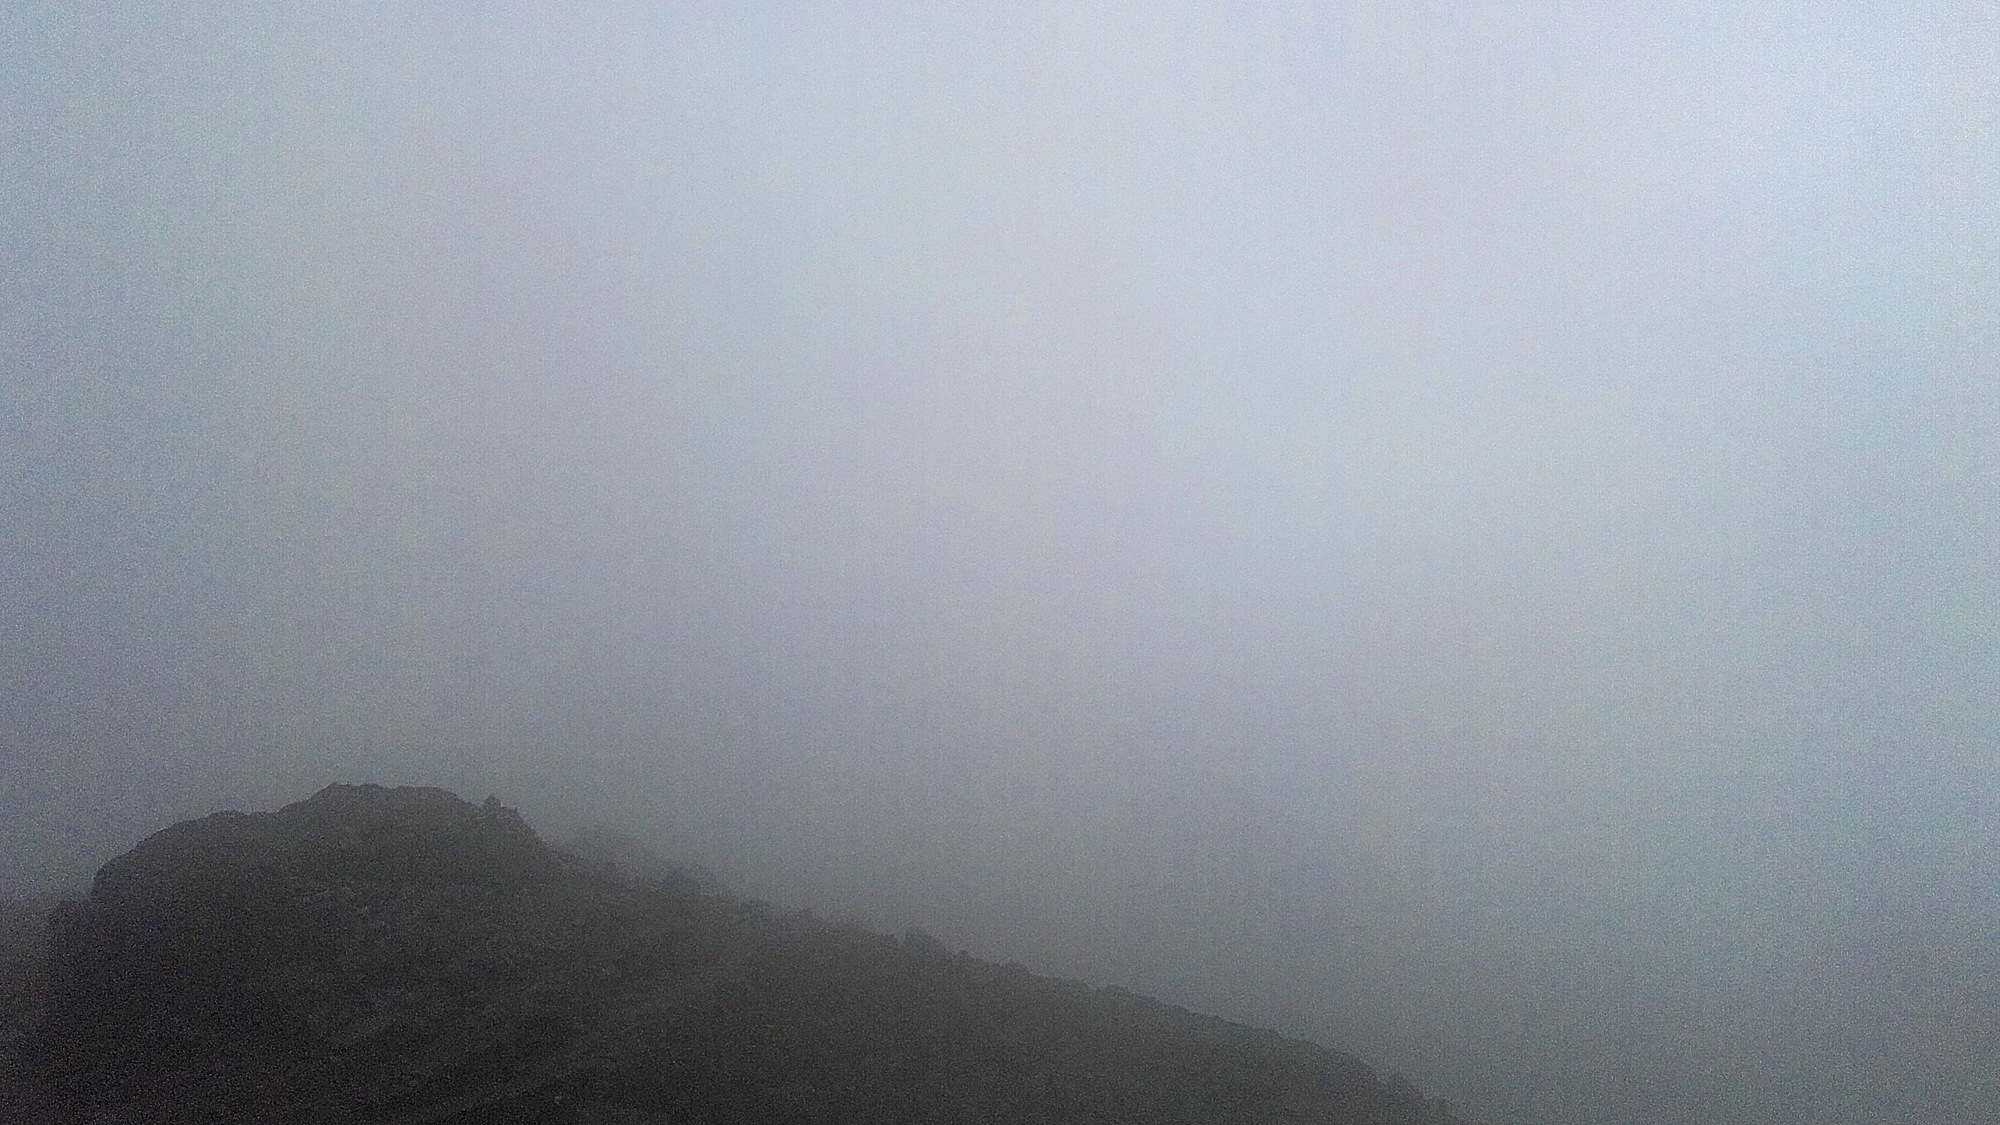 Inside a cloud on a mountain.